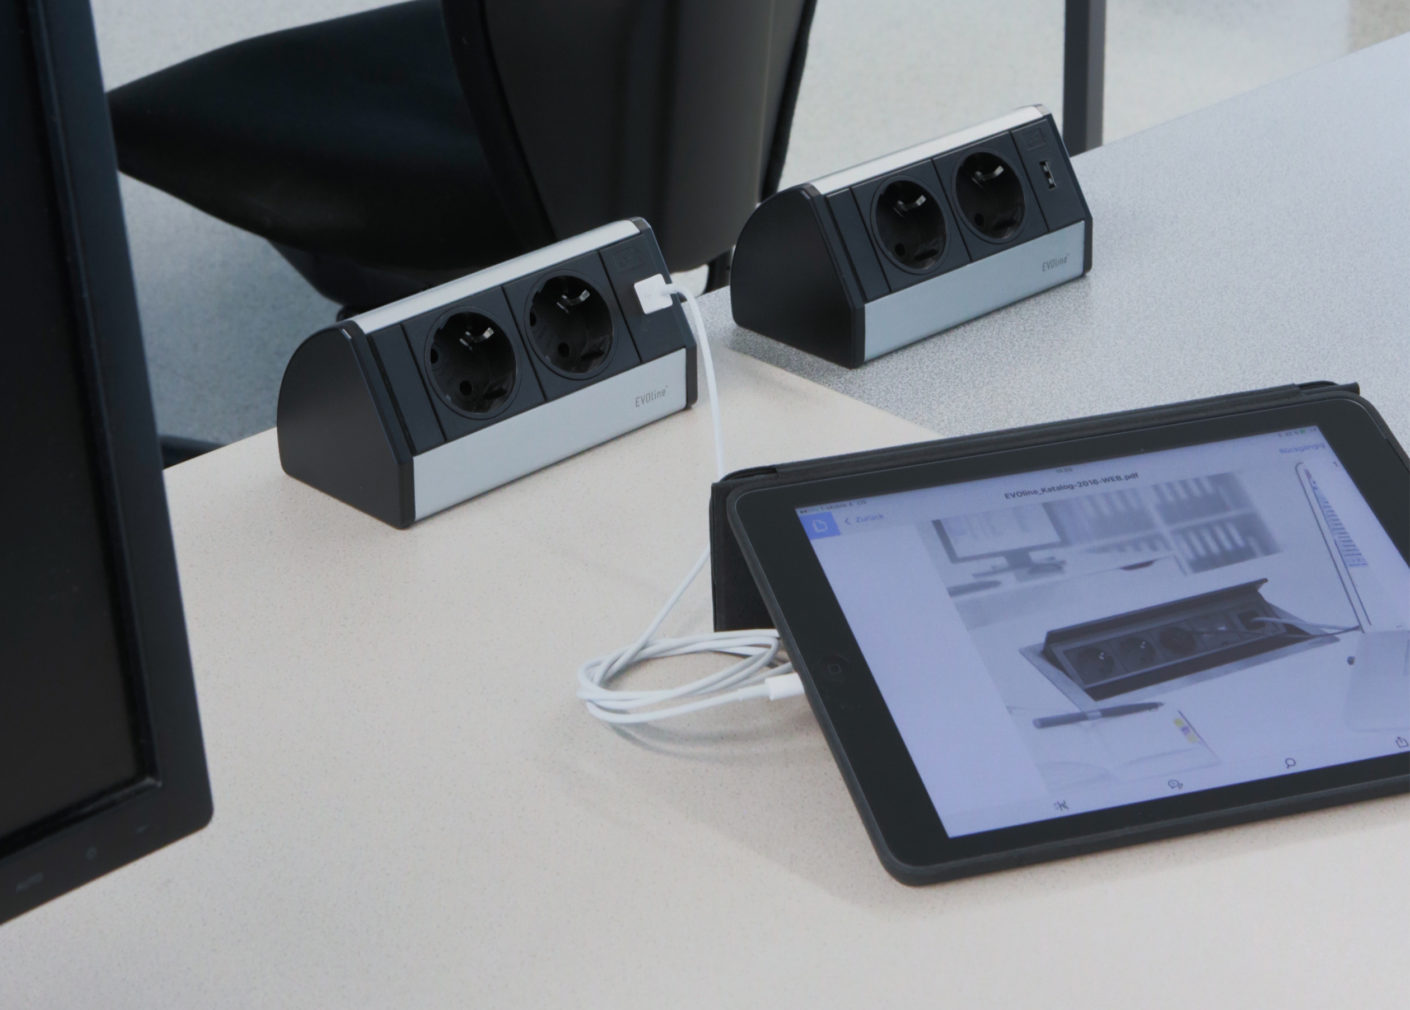 Two sockets and one USB port per workstation provide each user with sufficient power for their devices.